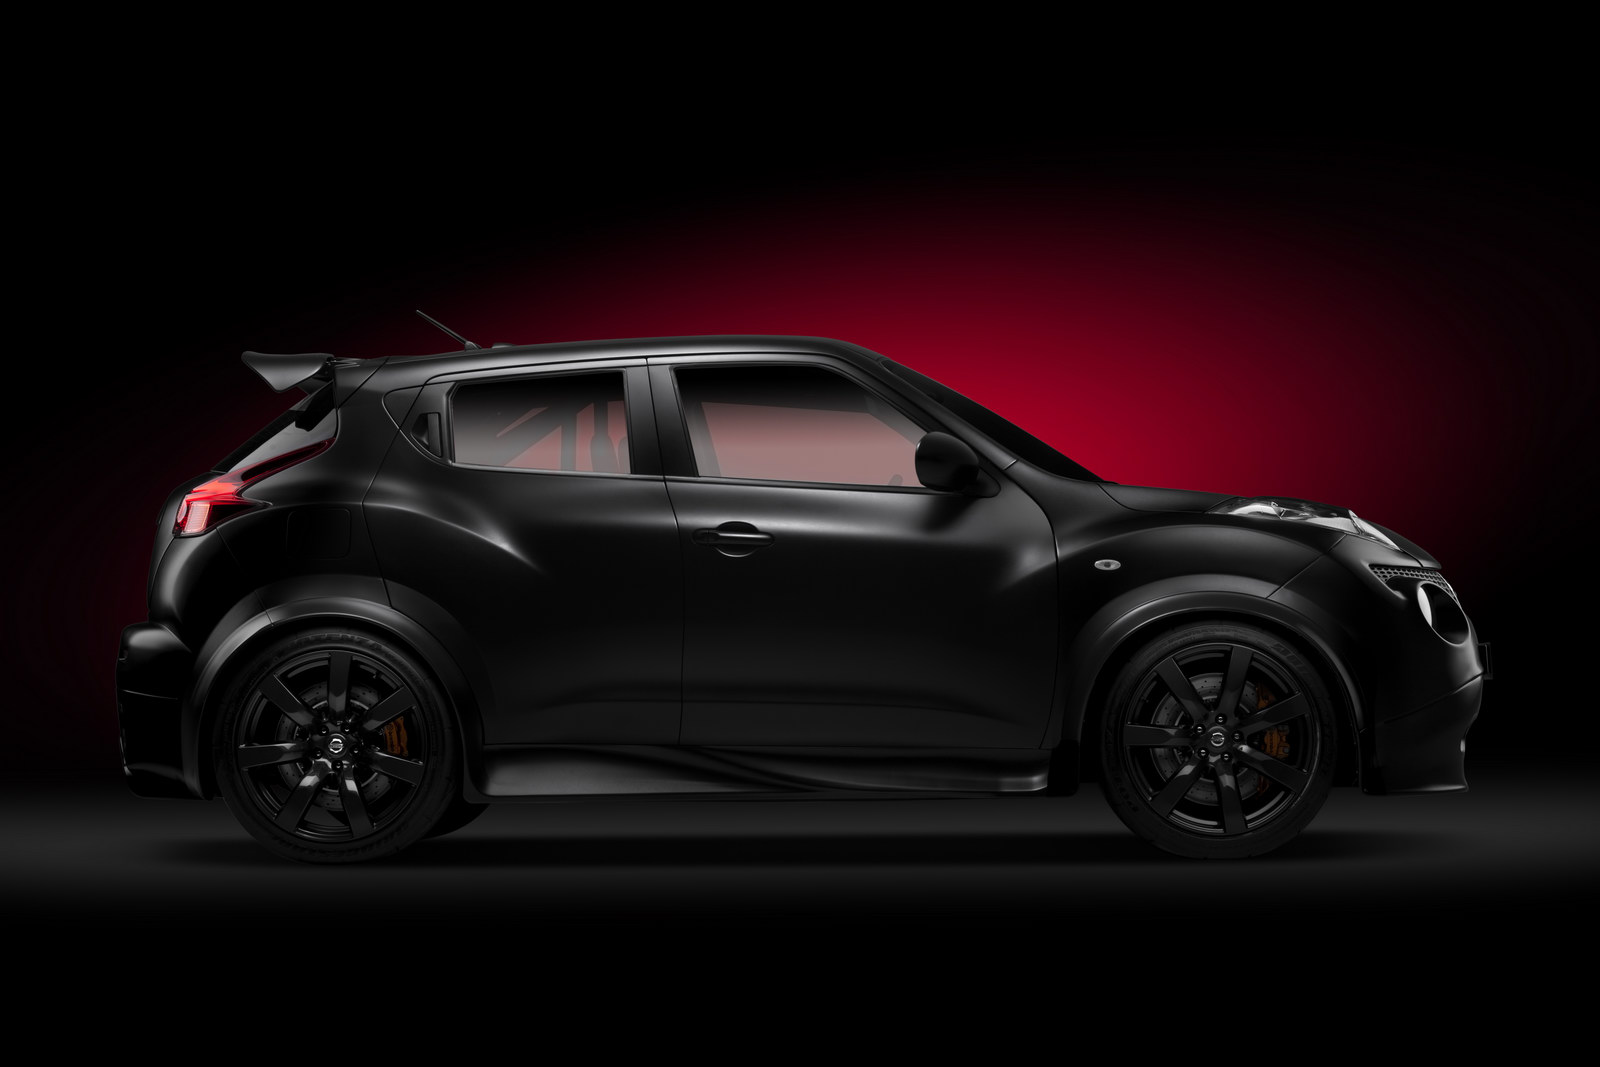 Nissan 480hp Juke R 3 2011 Nissans 480HP Juke R Finally Revealed in Photos and Videos